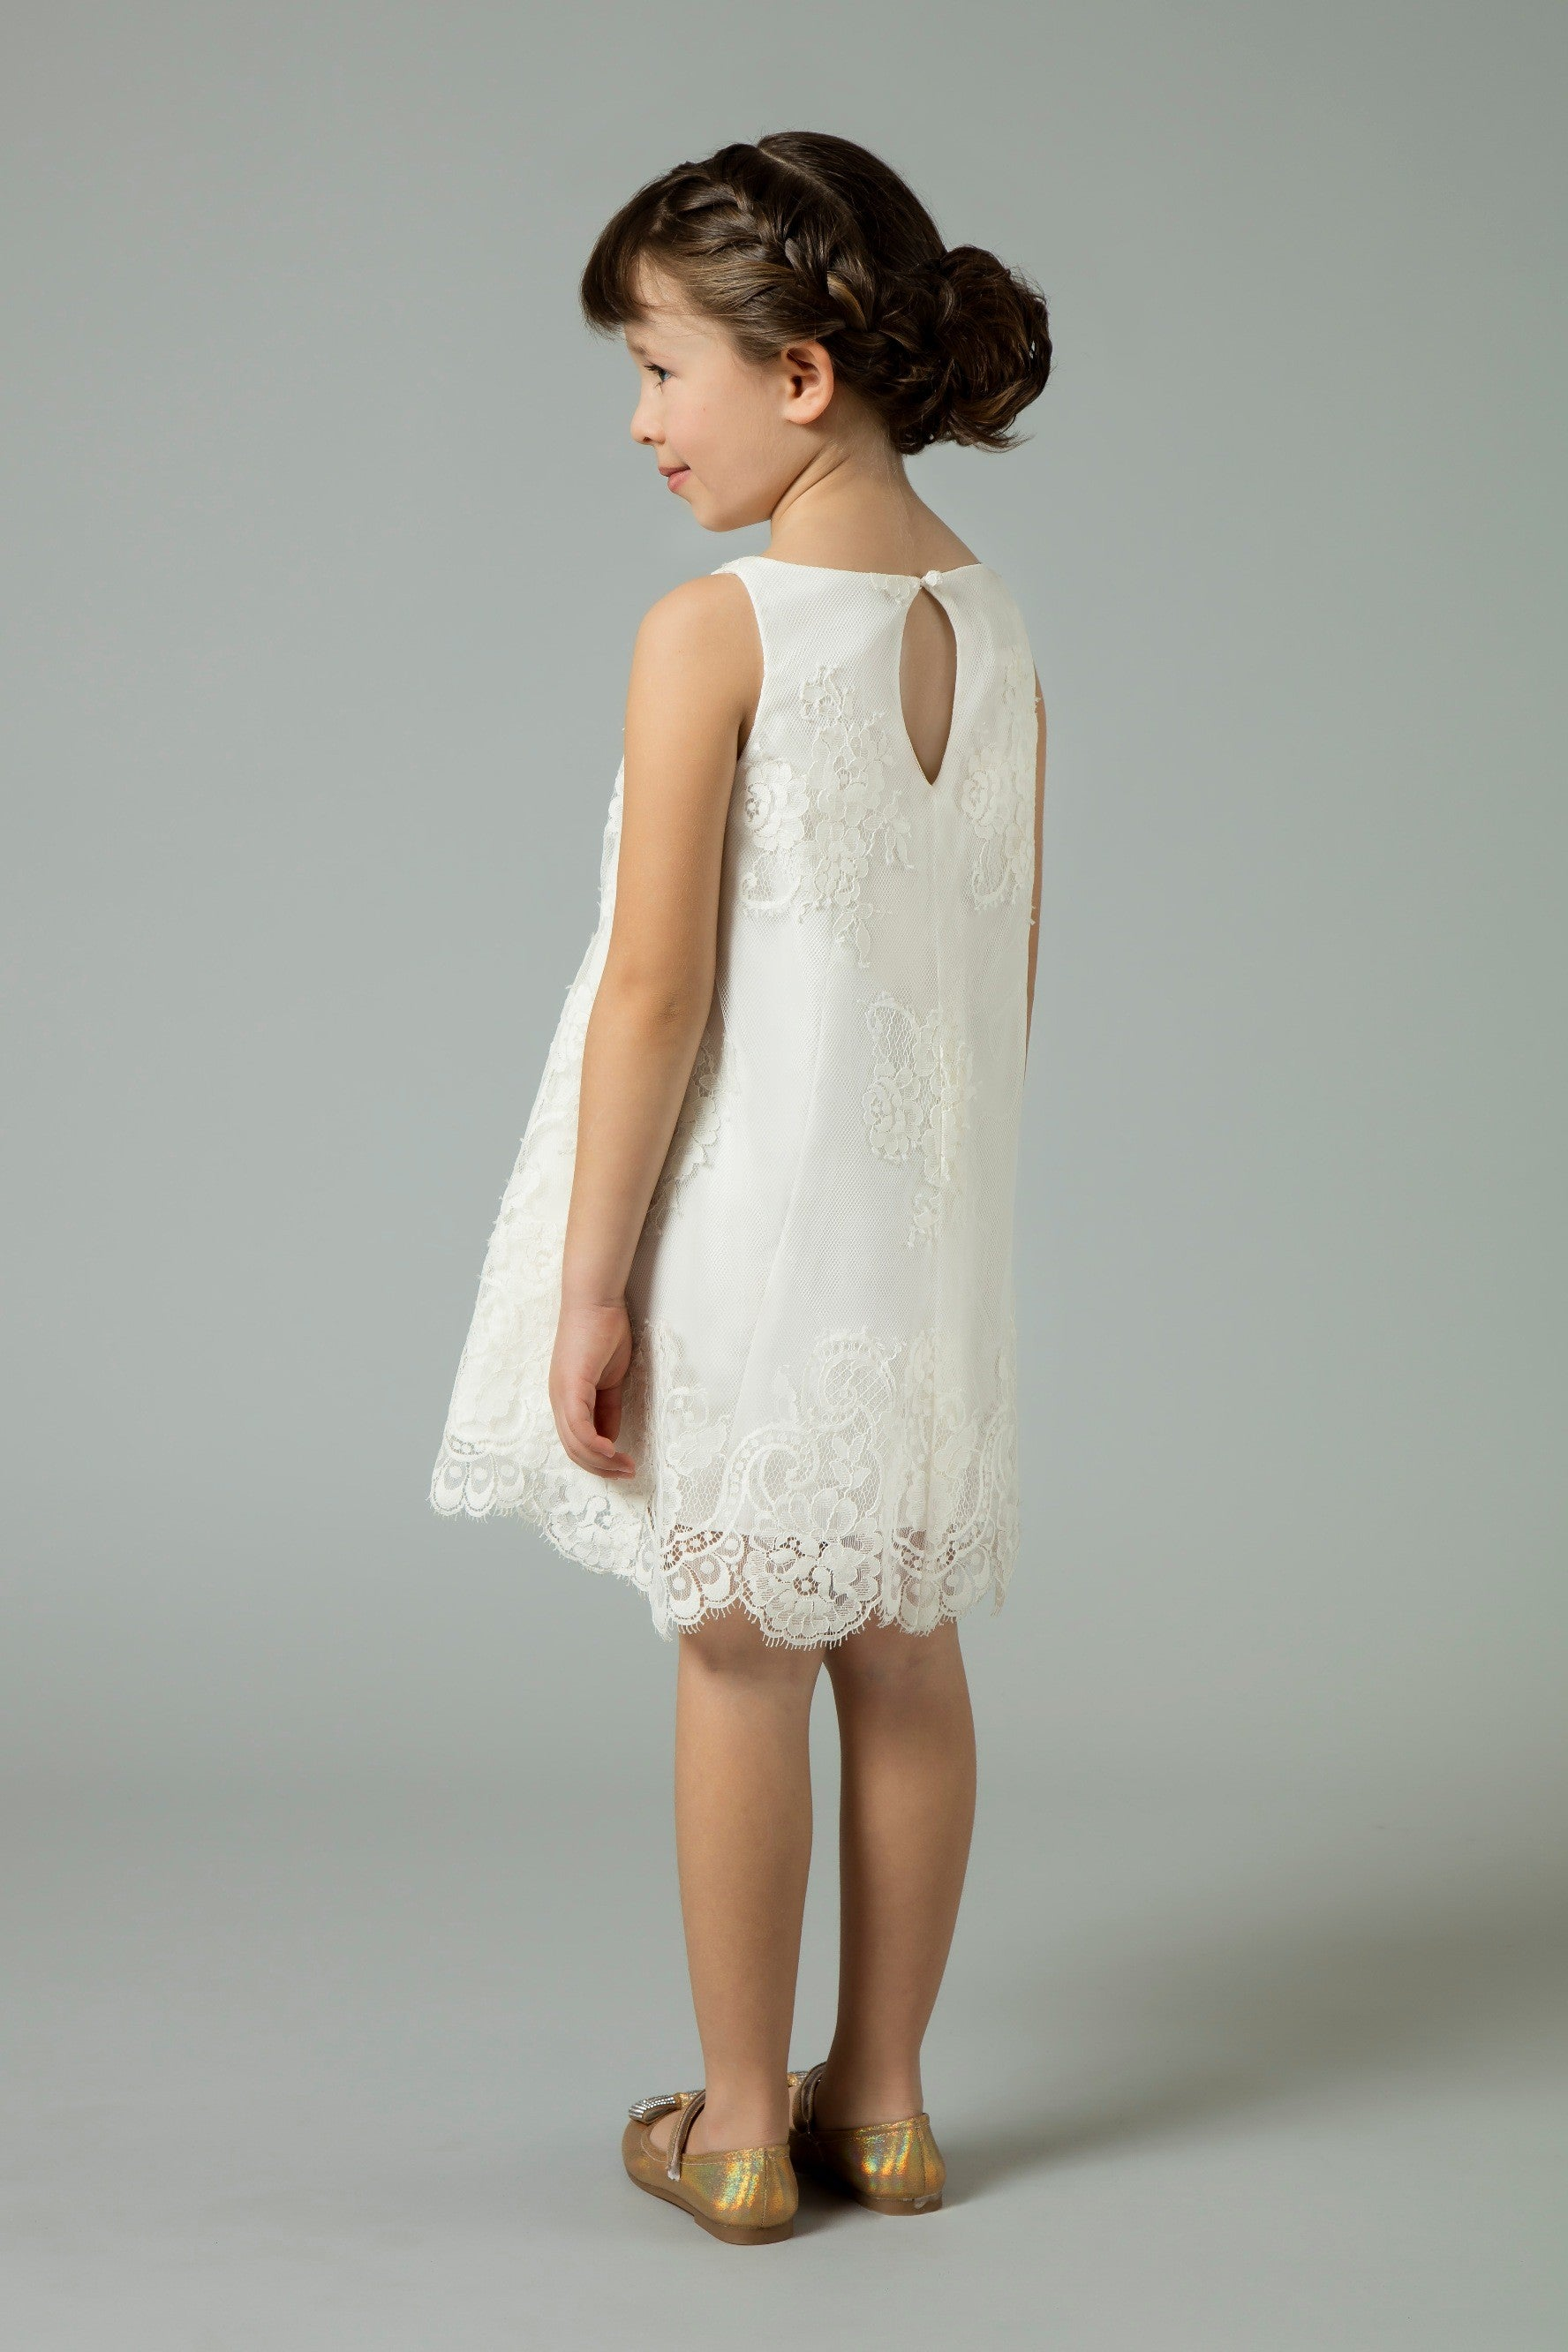 Sleeveless All Over Lace Dress with Scalloped Hem-RK1361